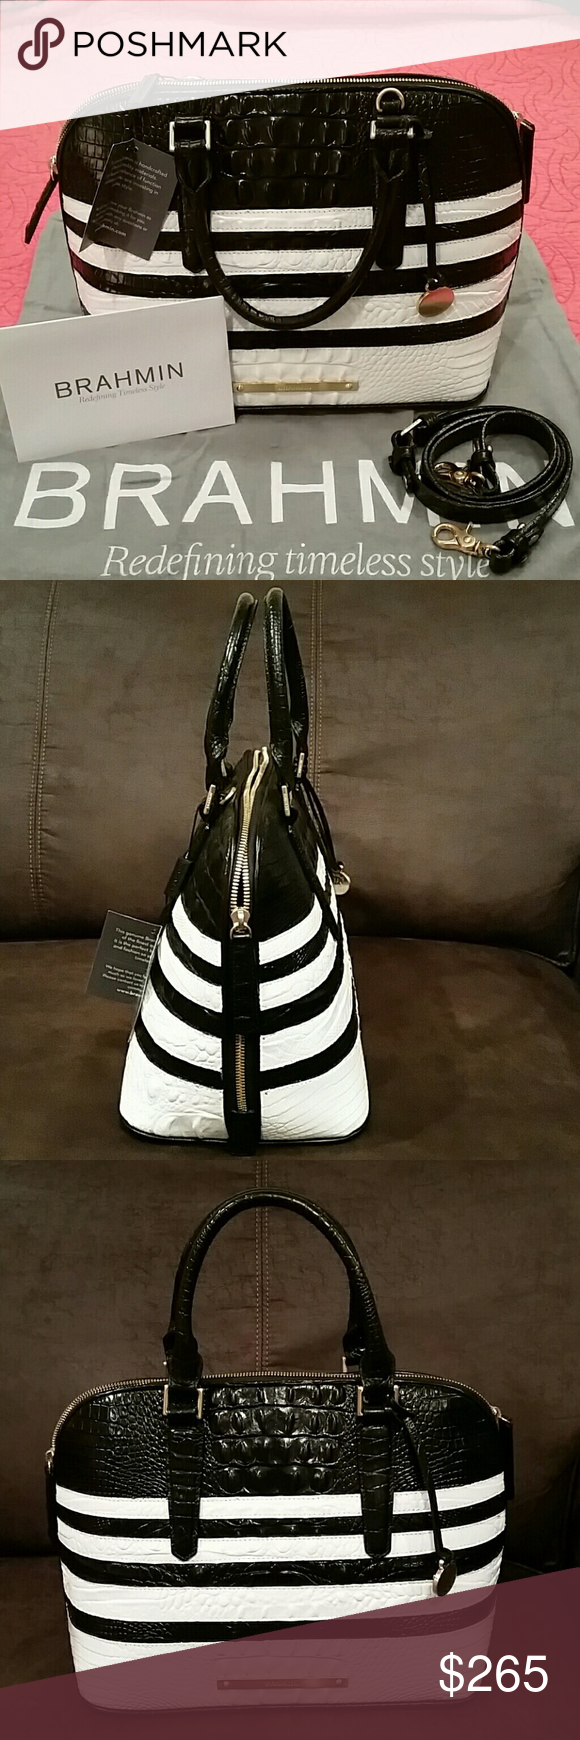 """NWT Brahmin Vivian Corsica Genuine Leather Satchel This black and white Vivian Dome Satchel is the ultimate in ladylike elegance. It's a spacious, structured satchel with a two way zipper. A versatile style, you may carry by hand or attach the longer strap to wear as a crossbody or over your shoulder. Double Handle Satchel. Removable, Adjustable Shoulder Strap. Double Zipper Closure. Footed Bottom. Interior Zip Pocket. Zip Jewelry Pocket. Two Organizer Pockets. 4.5"""" Handle Drop. 22.5"""" Strap…"""